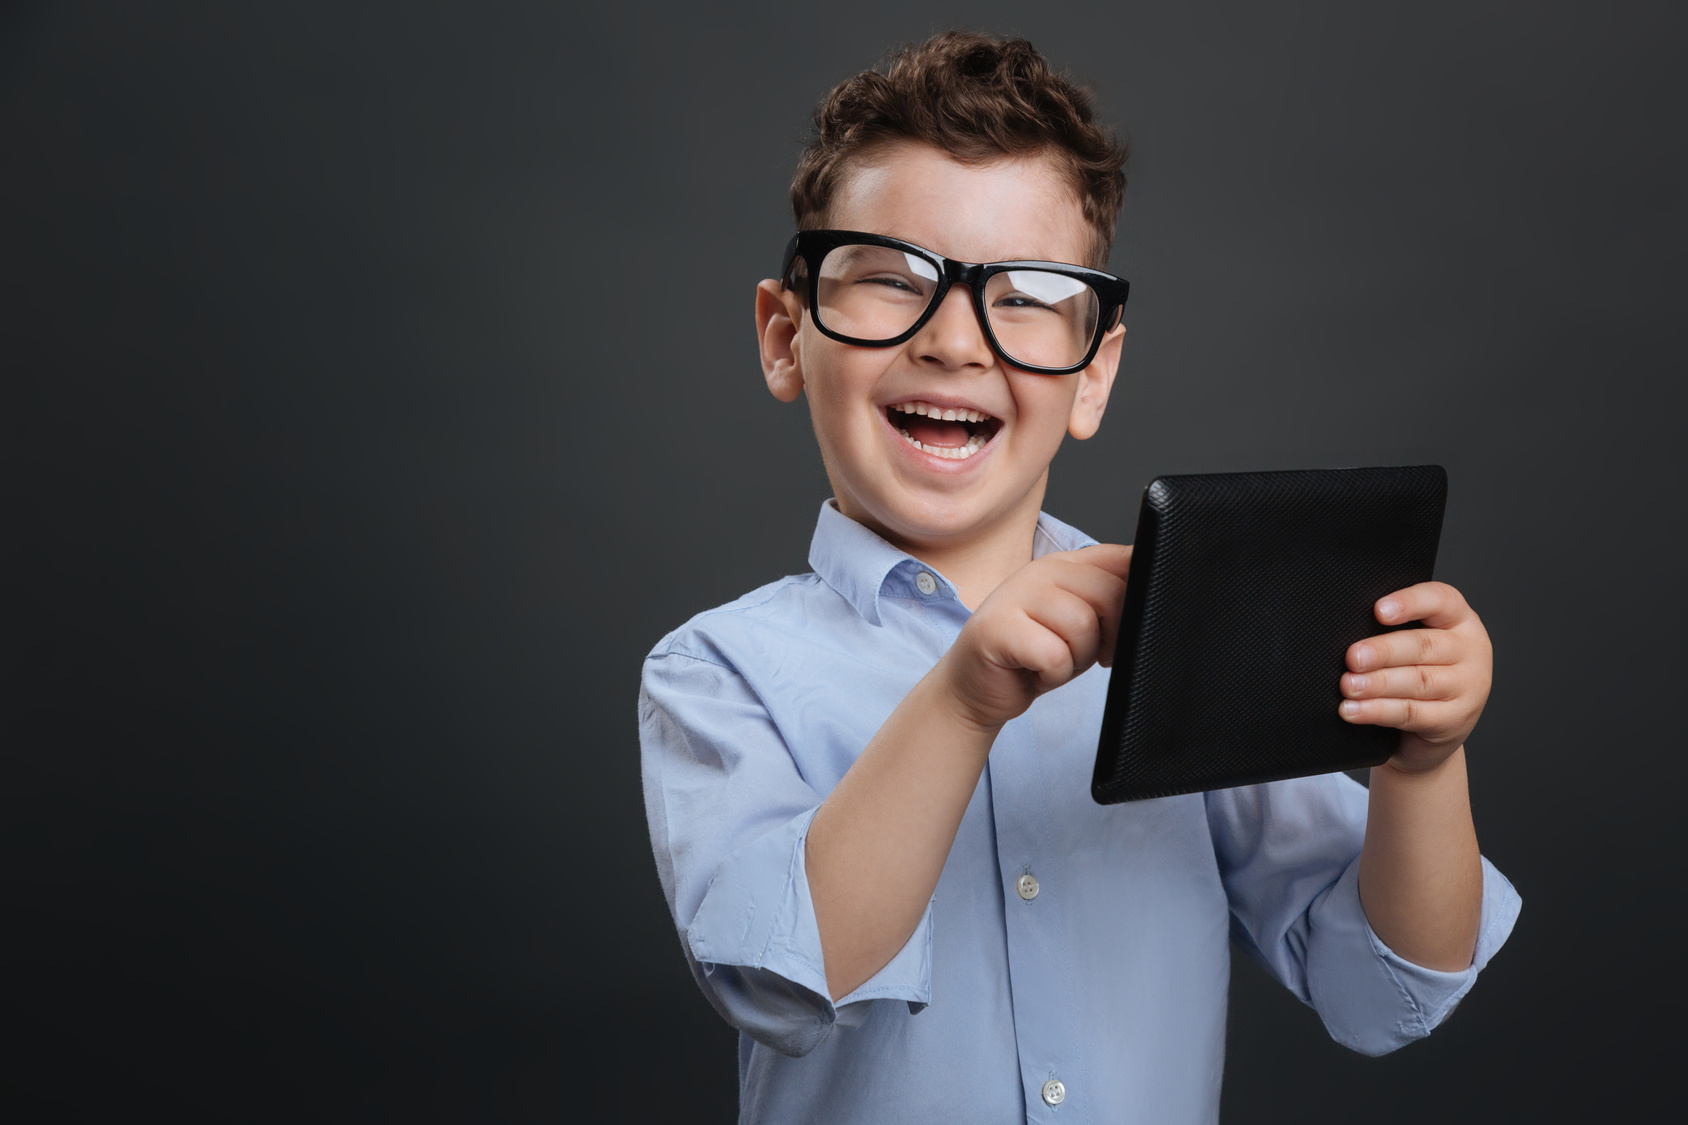 Educative gadget. Diligent clever nice boy using his tablet and looking excited while finding something interesting